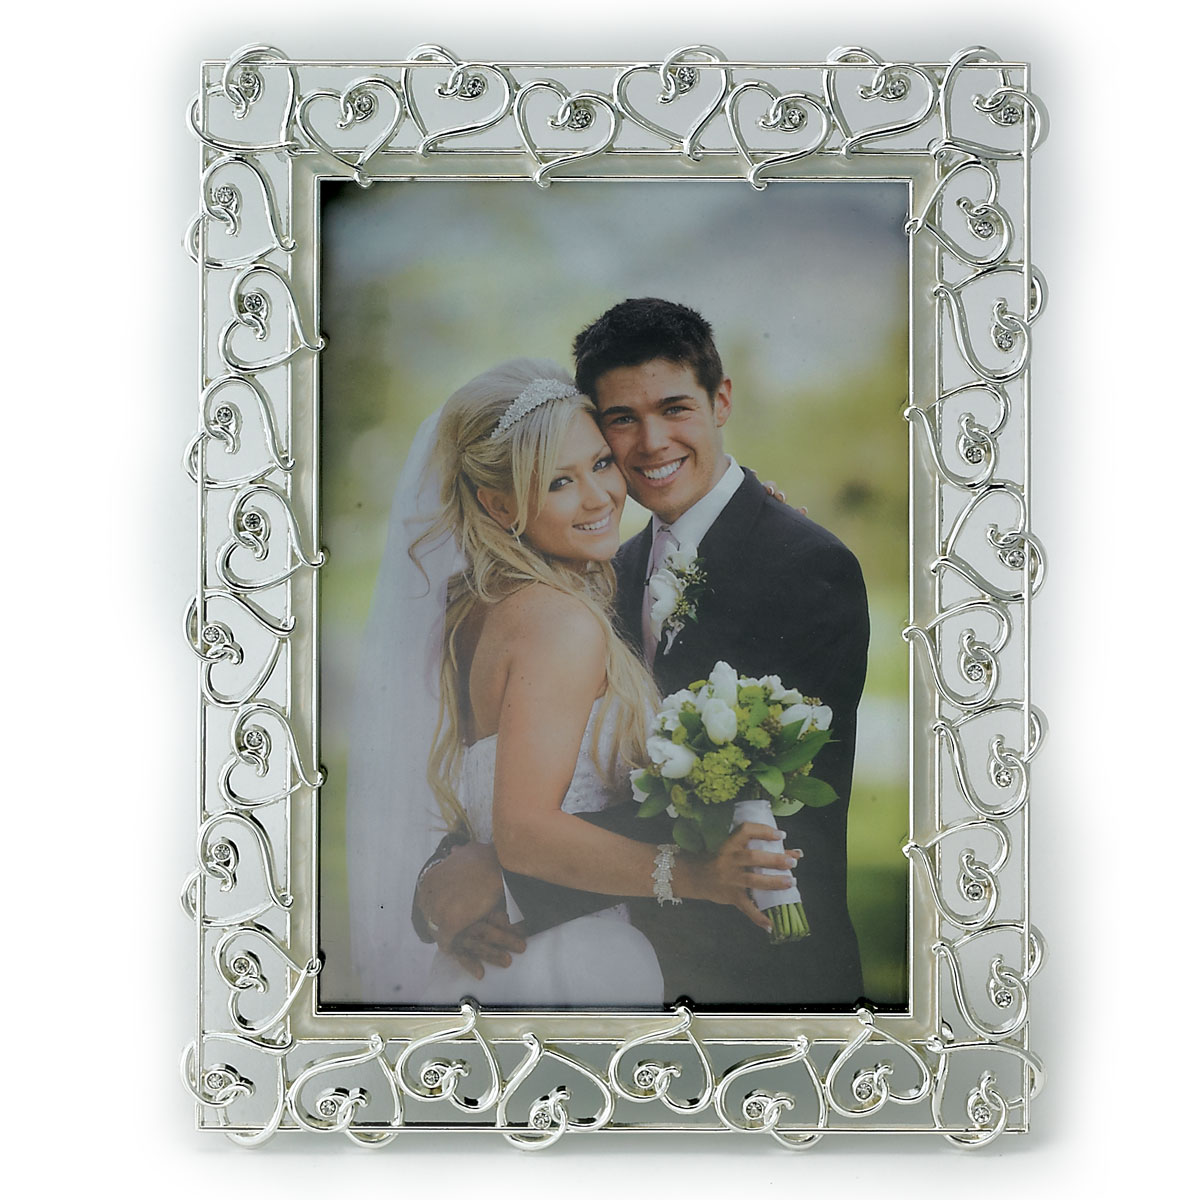 5x7 Silver Plated Metal Picture Frame Open Heart Design with Crystals and Ivory Enamel by Lawrence Frames